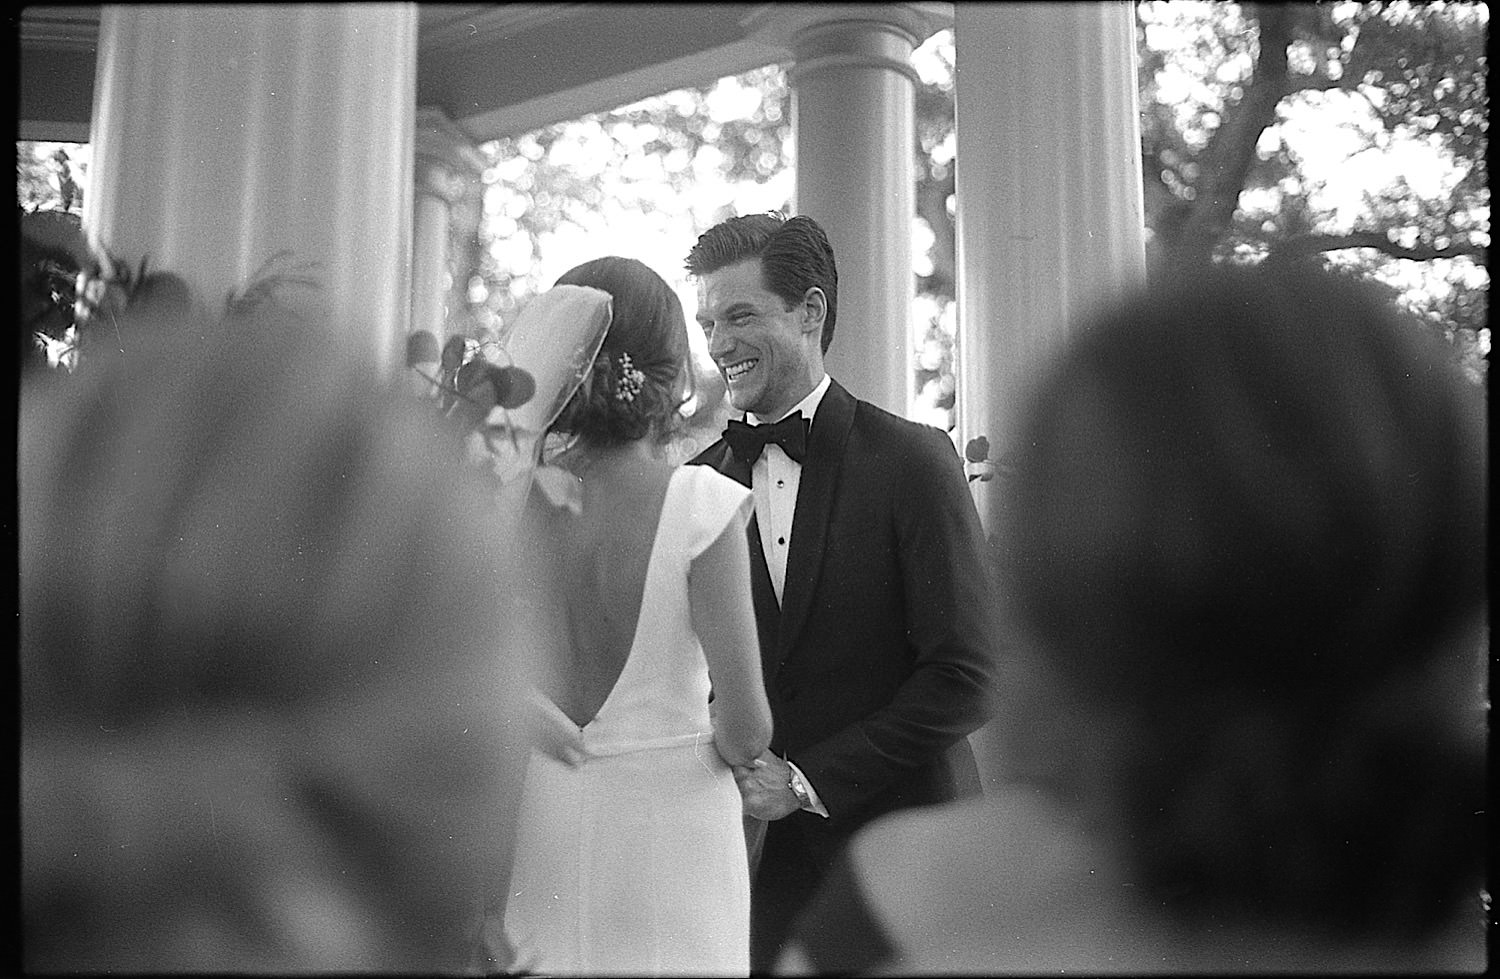 Taylor and logan share a laugh at the altar in the courtyard of the Elms Mansion.